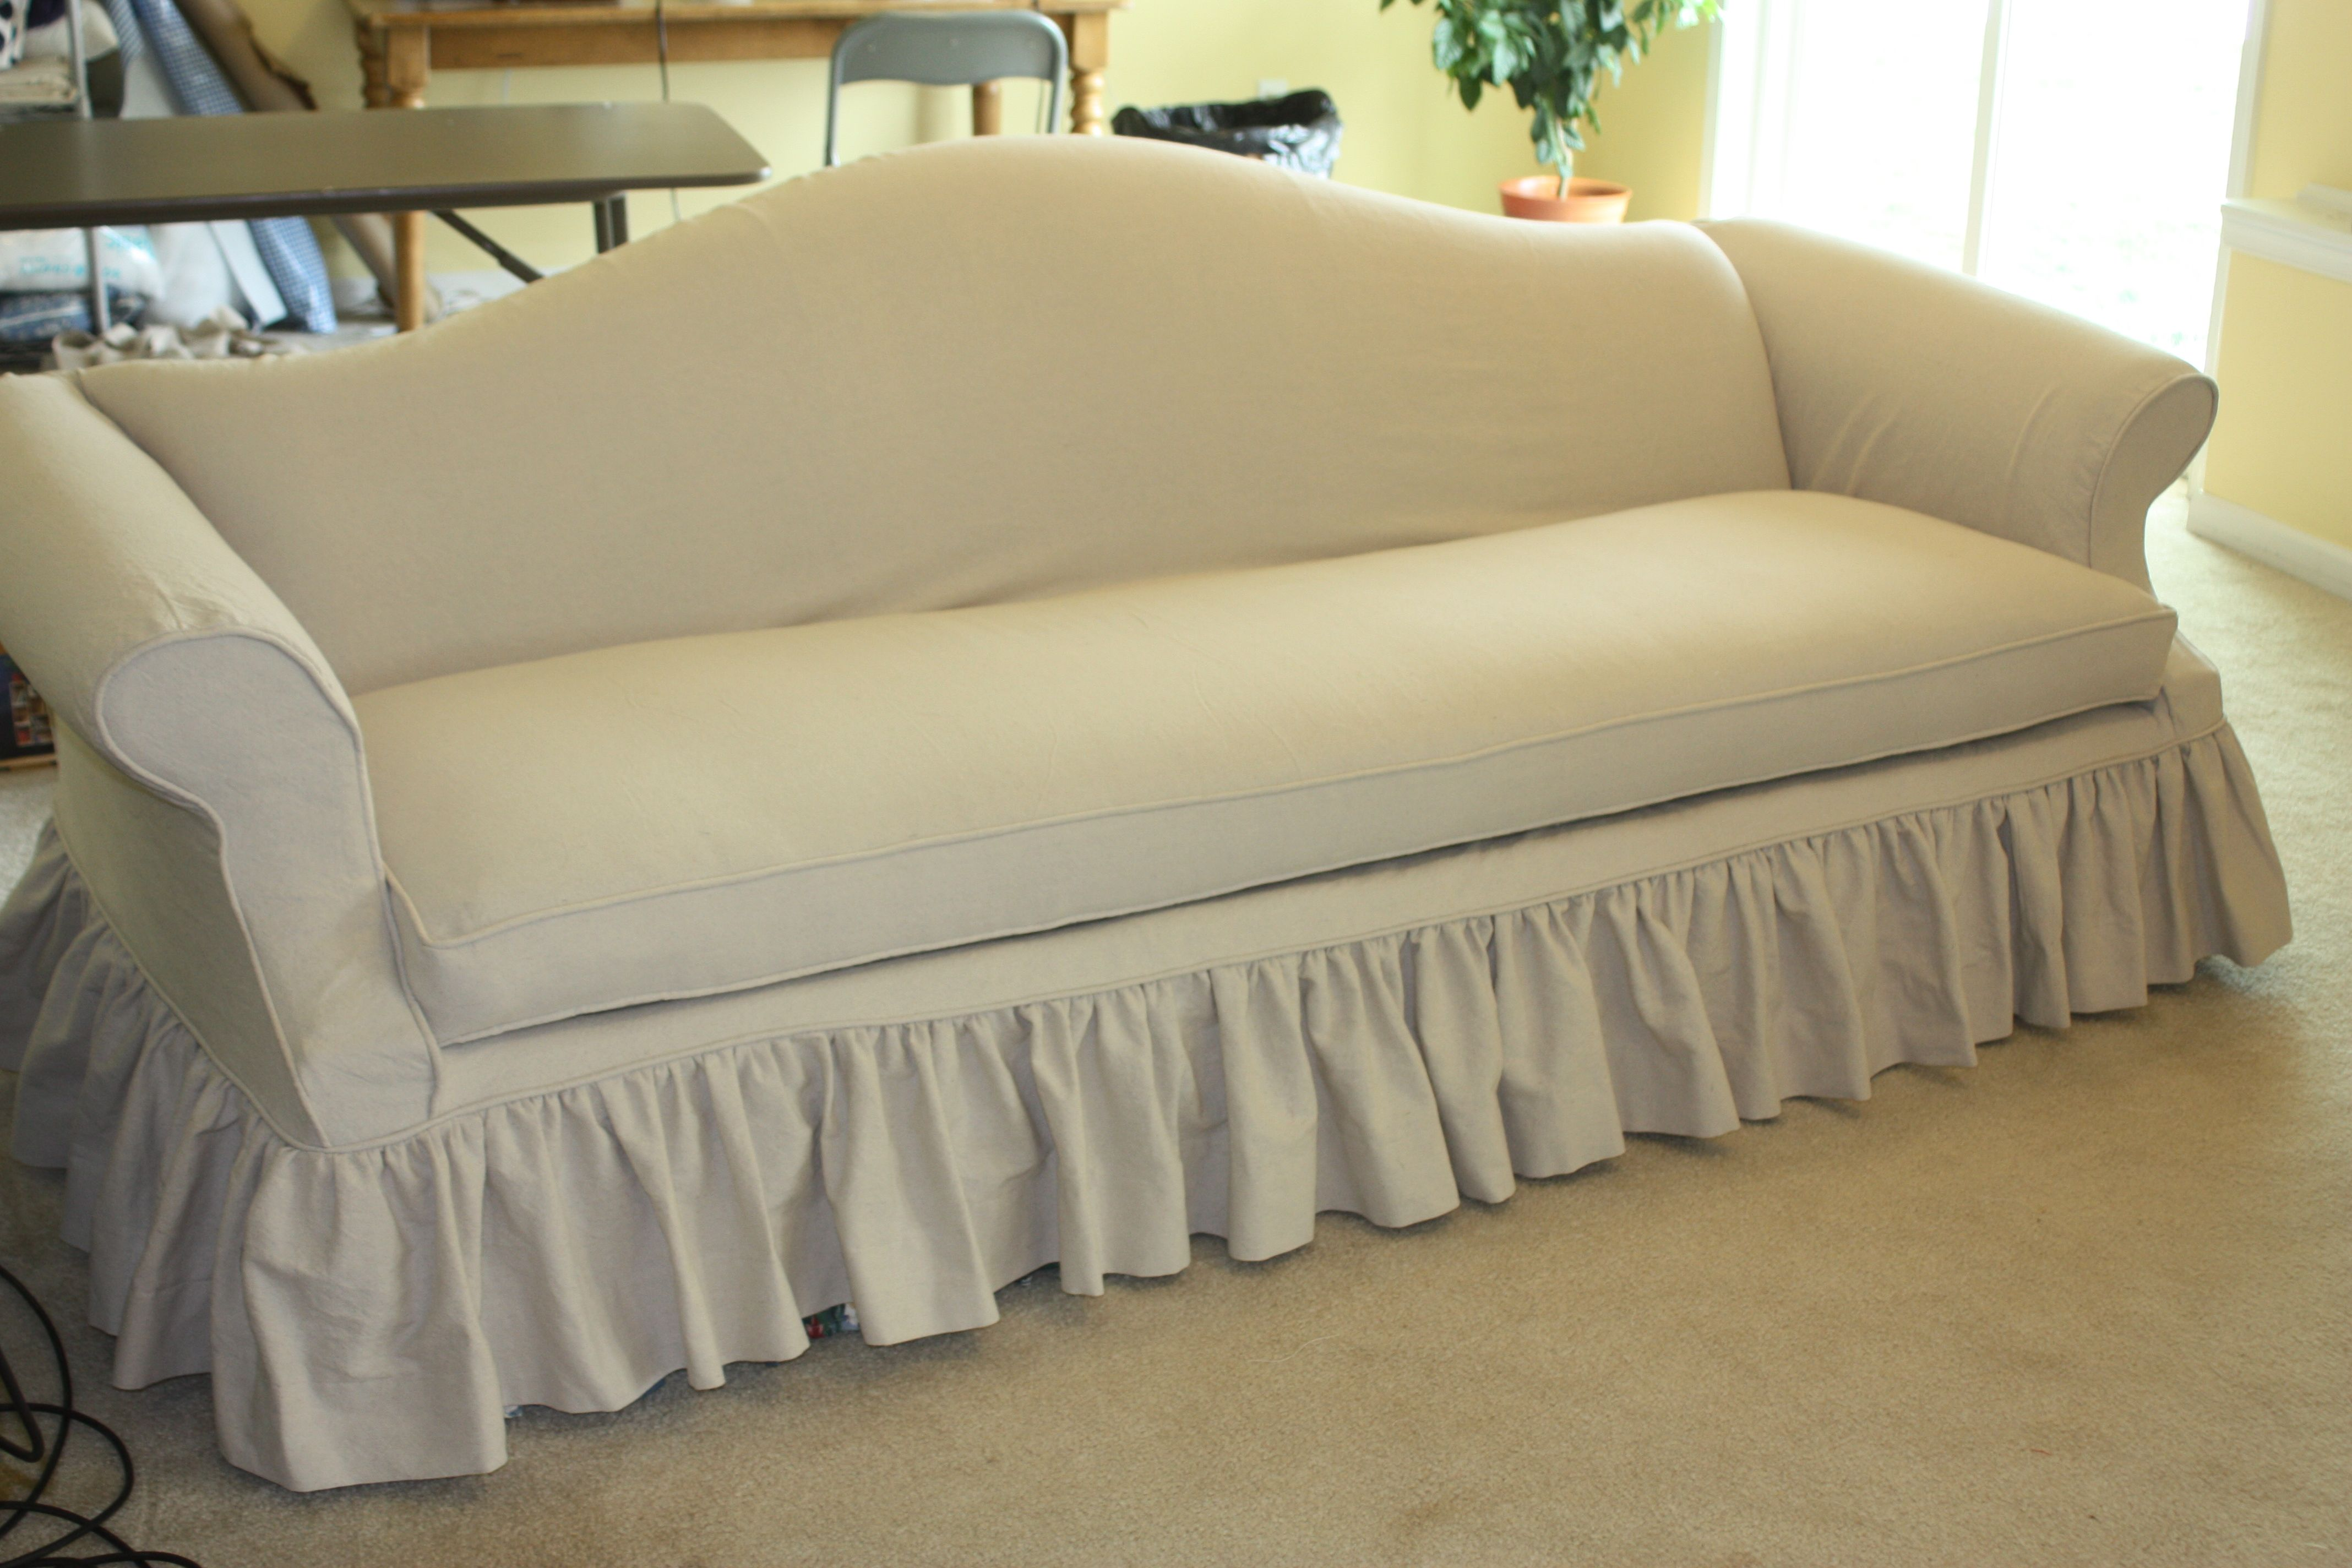 Drop cloth sofa slipcover with gathered skirt at Twill Slipcover